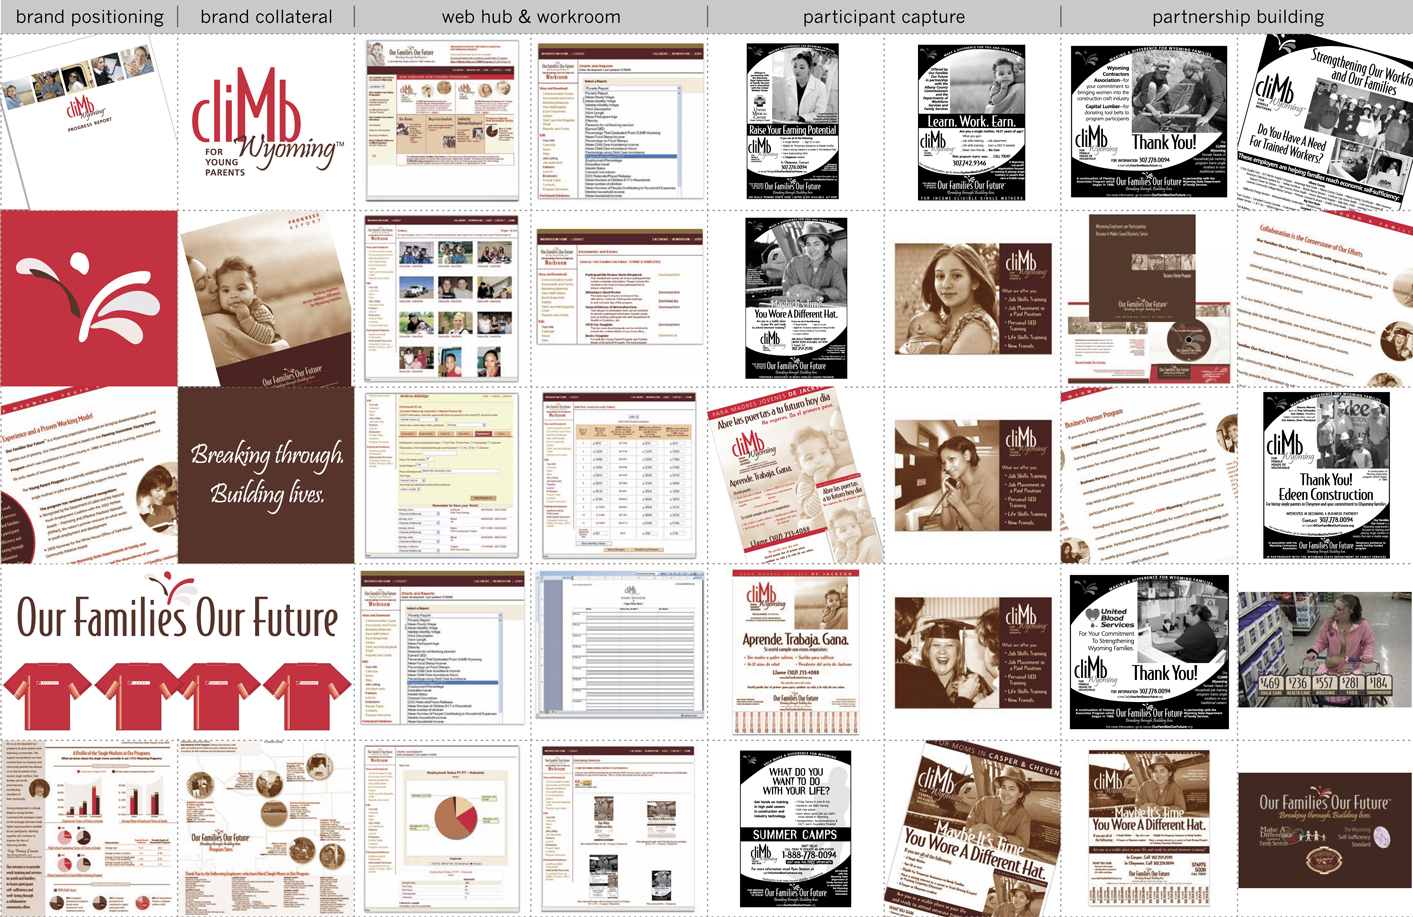 Campaign Design / Development - Our Families Our Future Wyoming